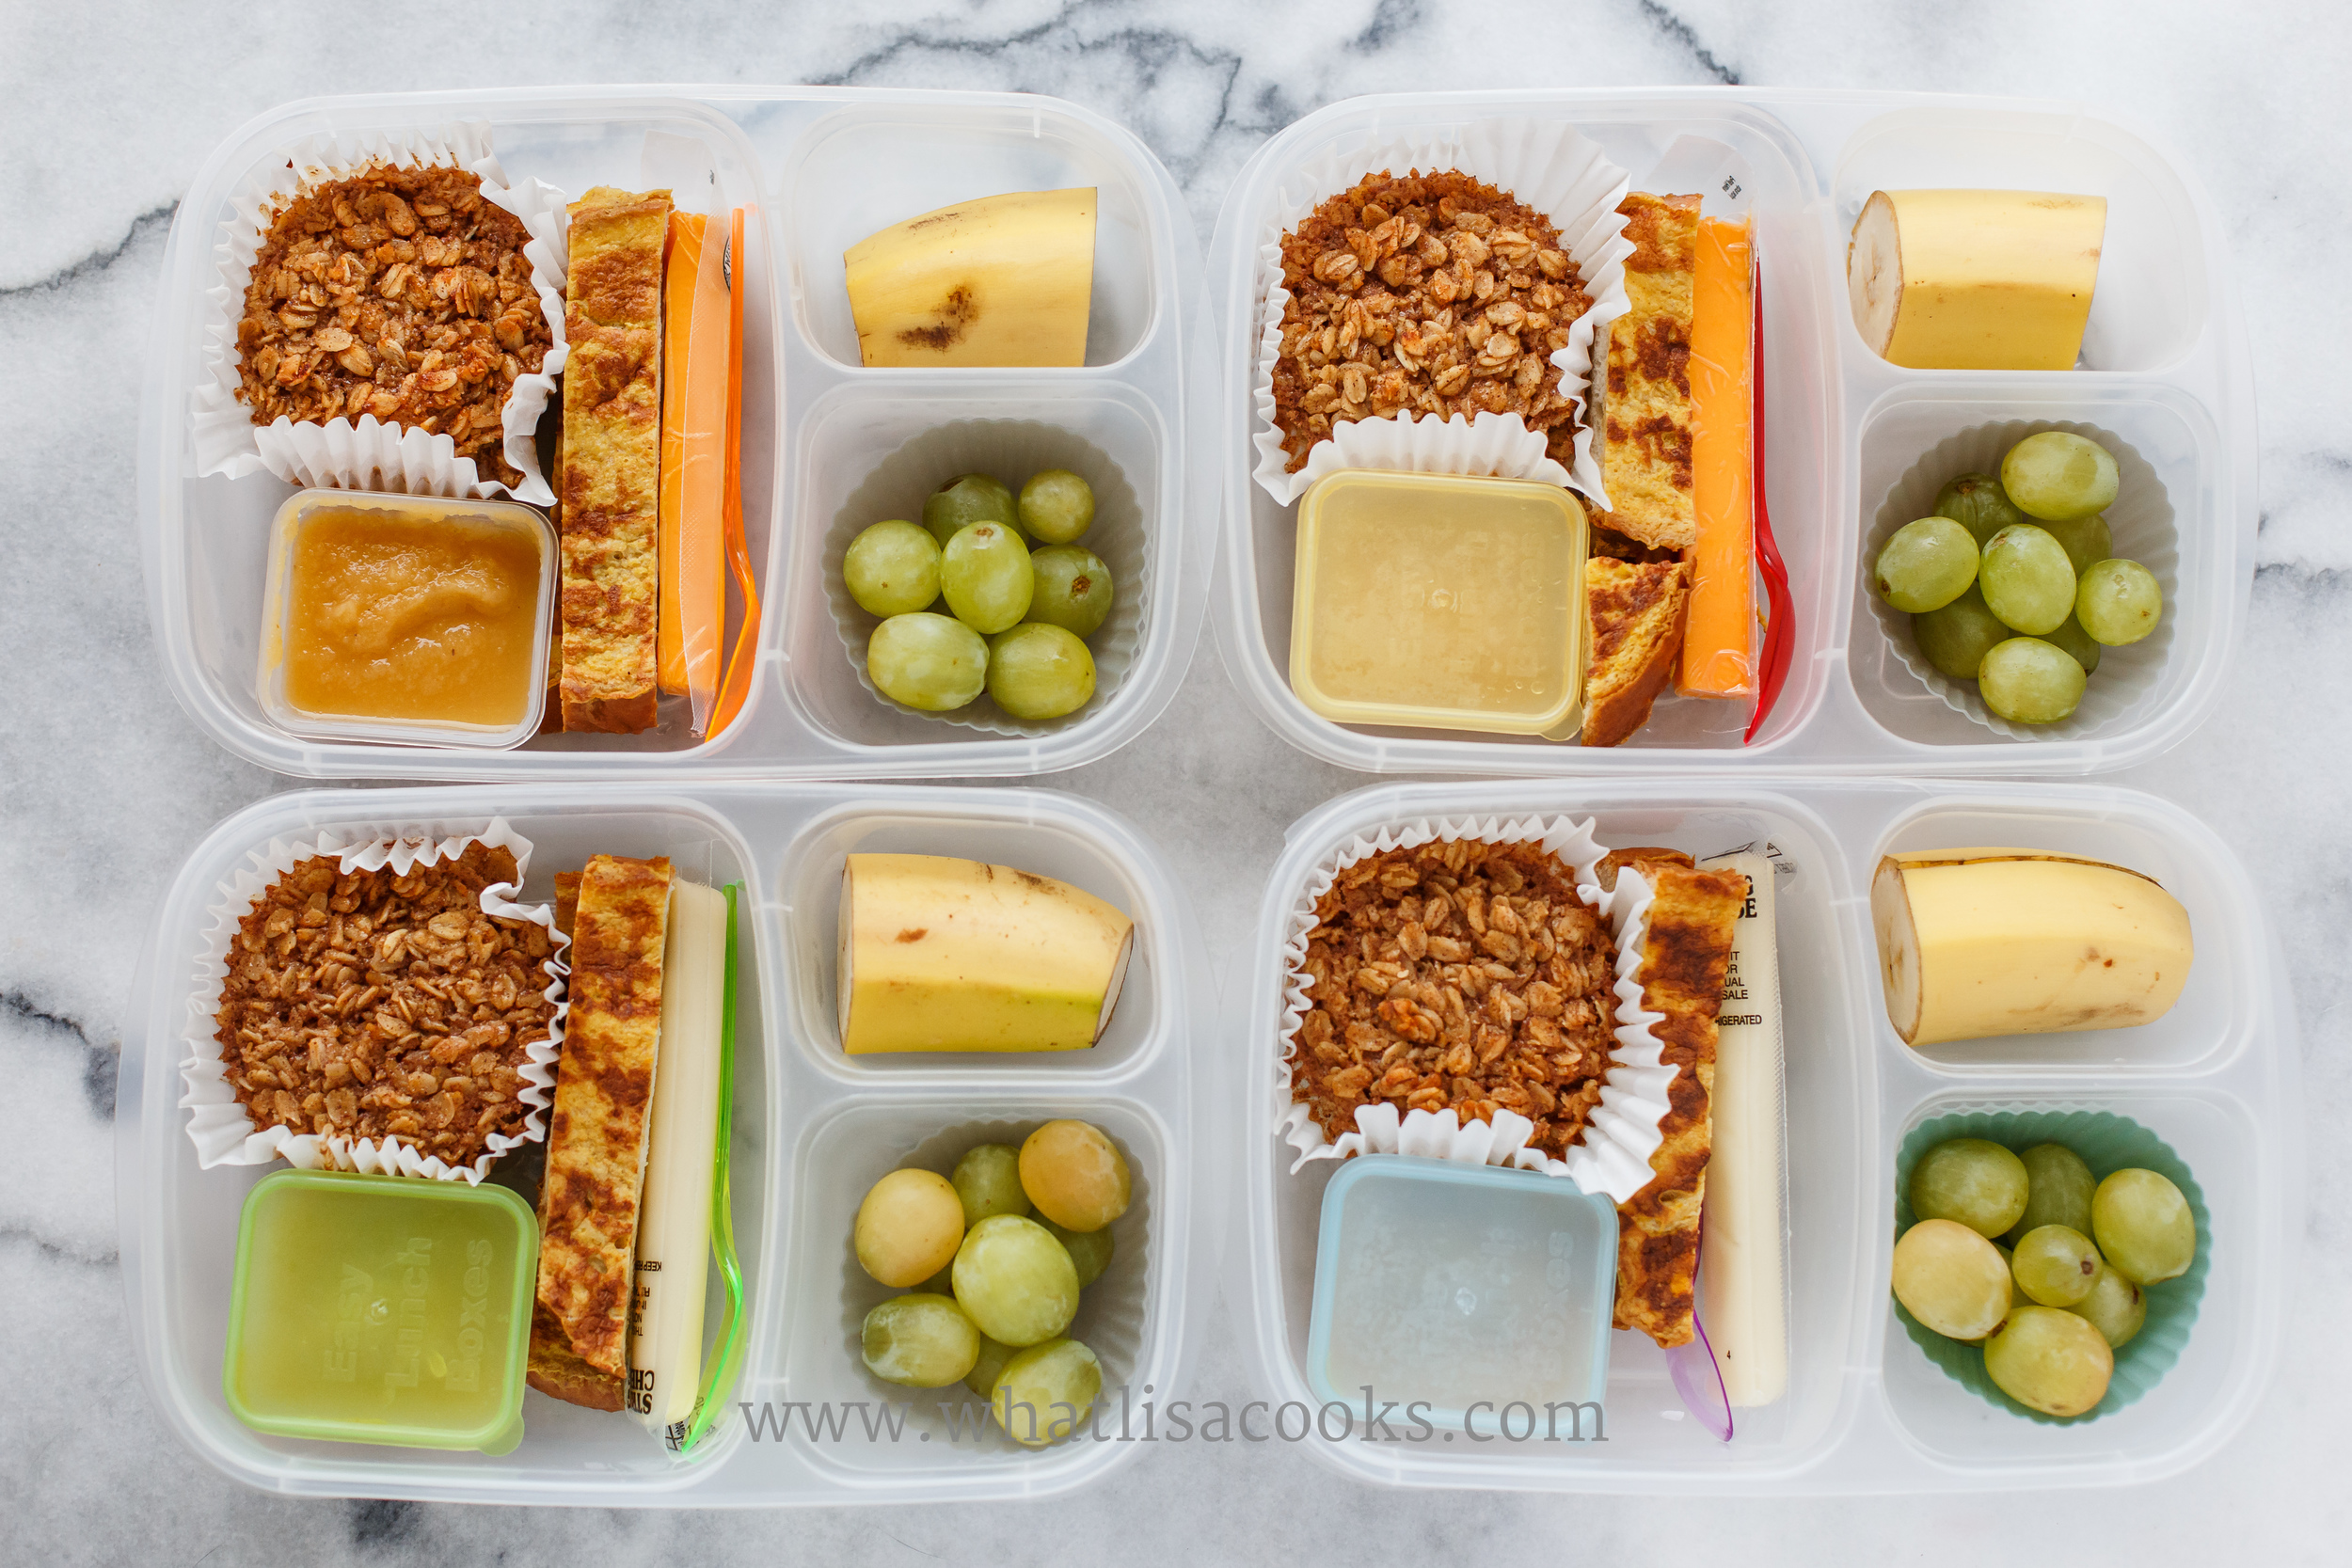 Breakfast for lunch: individual baked oatmeals, applesauce, pumpkin french toast, cheese stick, grapes, banana.